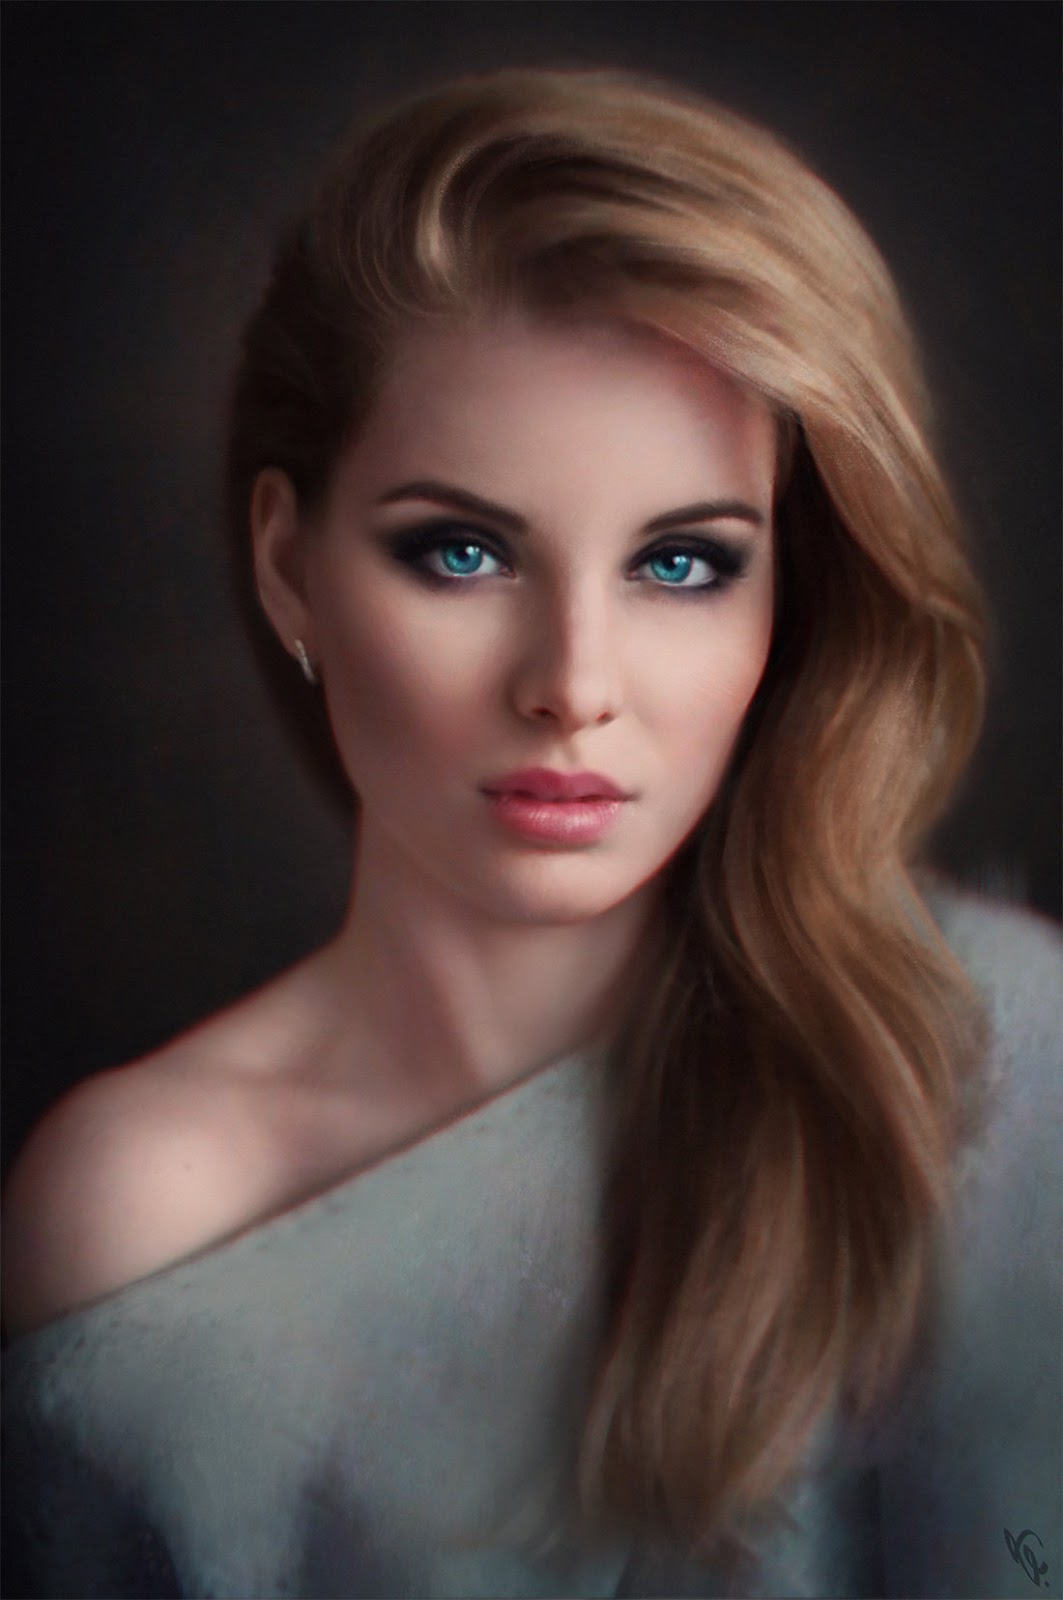 Top 21 beautiful digital painting by angel ganev cgistation - Beautiful woman painting hd ...